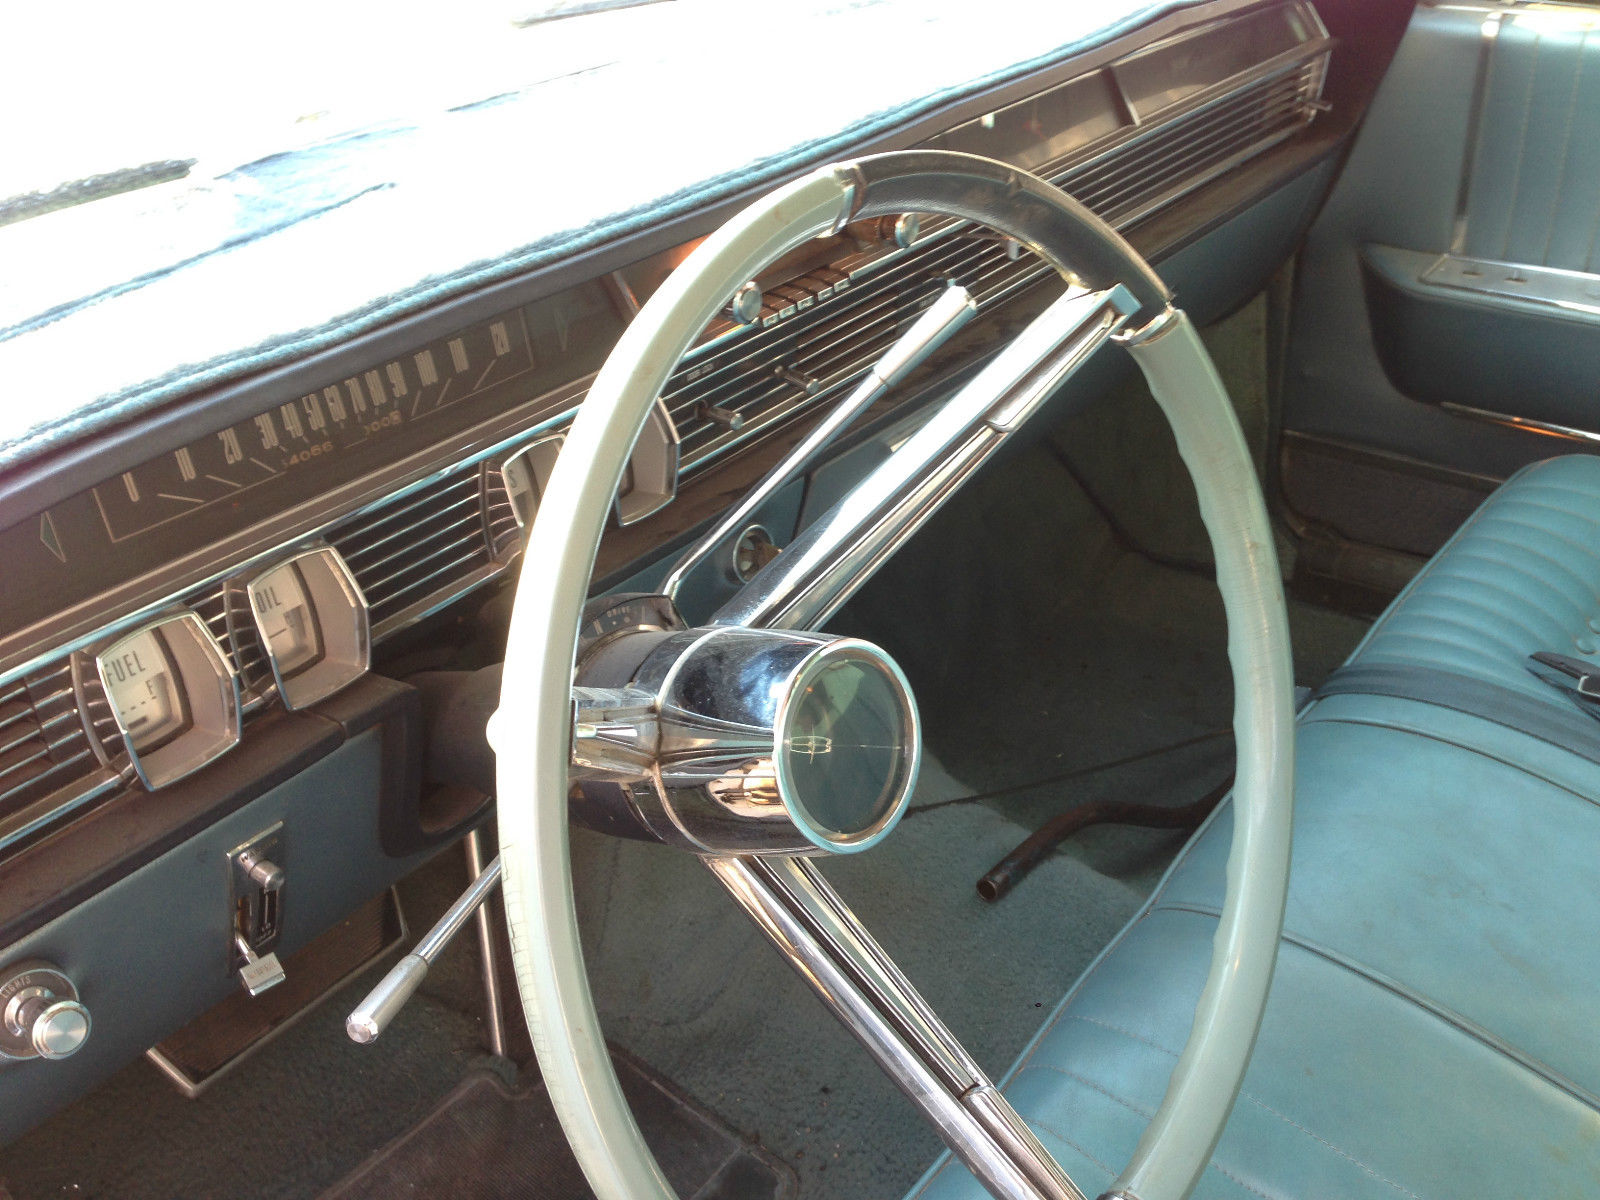 square shouldered 1964 lincoln continental hardtop sedan rusty but trusty. Black Bedroom Furniture Sets. Home Design Ideas